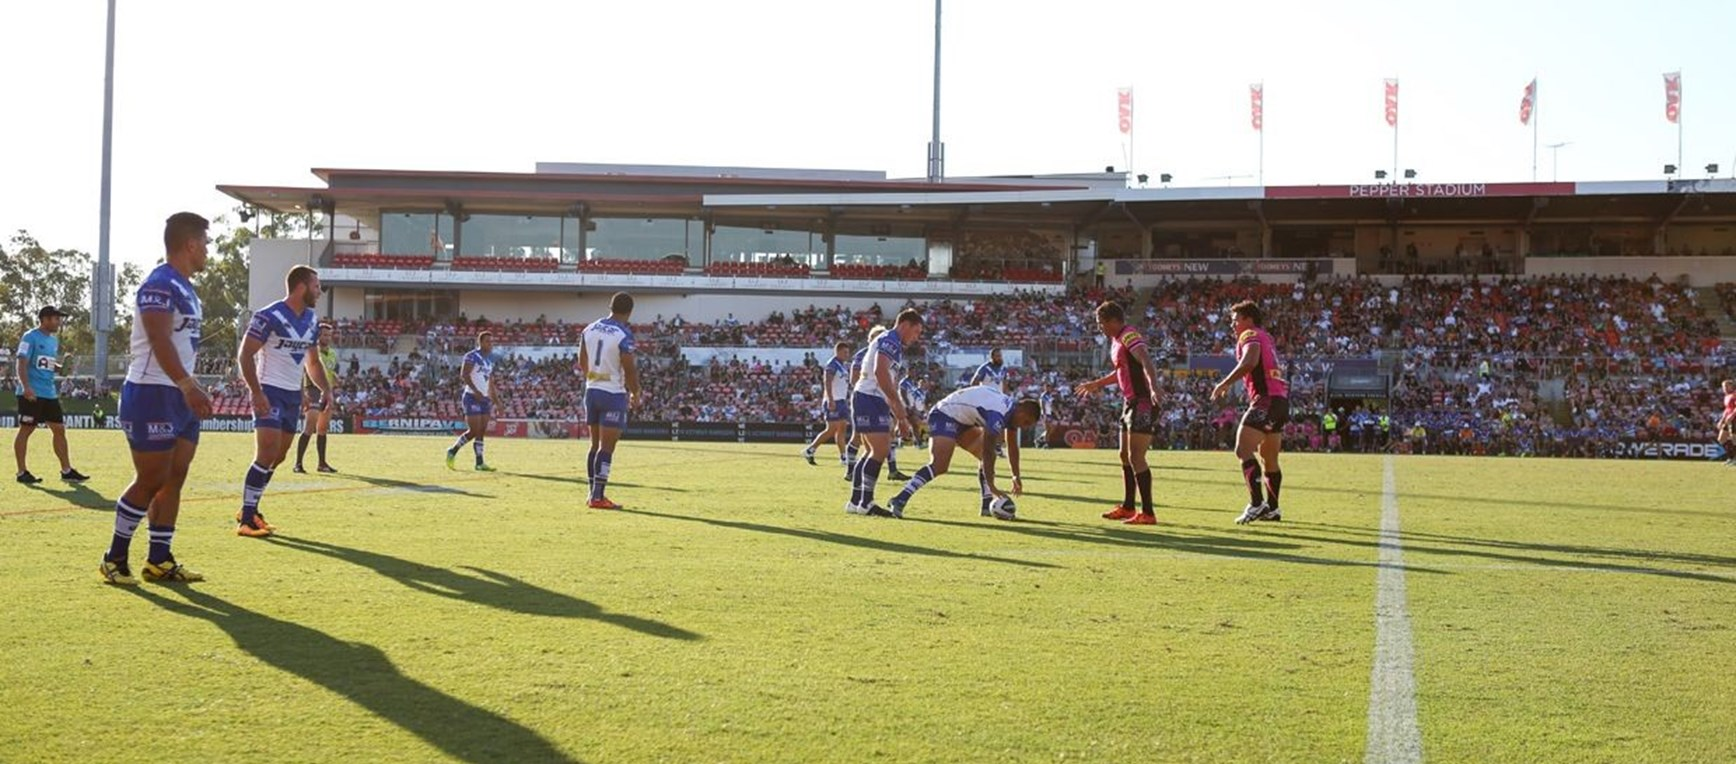 GALLERY: Bulldogs v Panthers